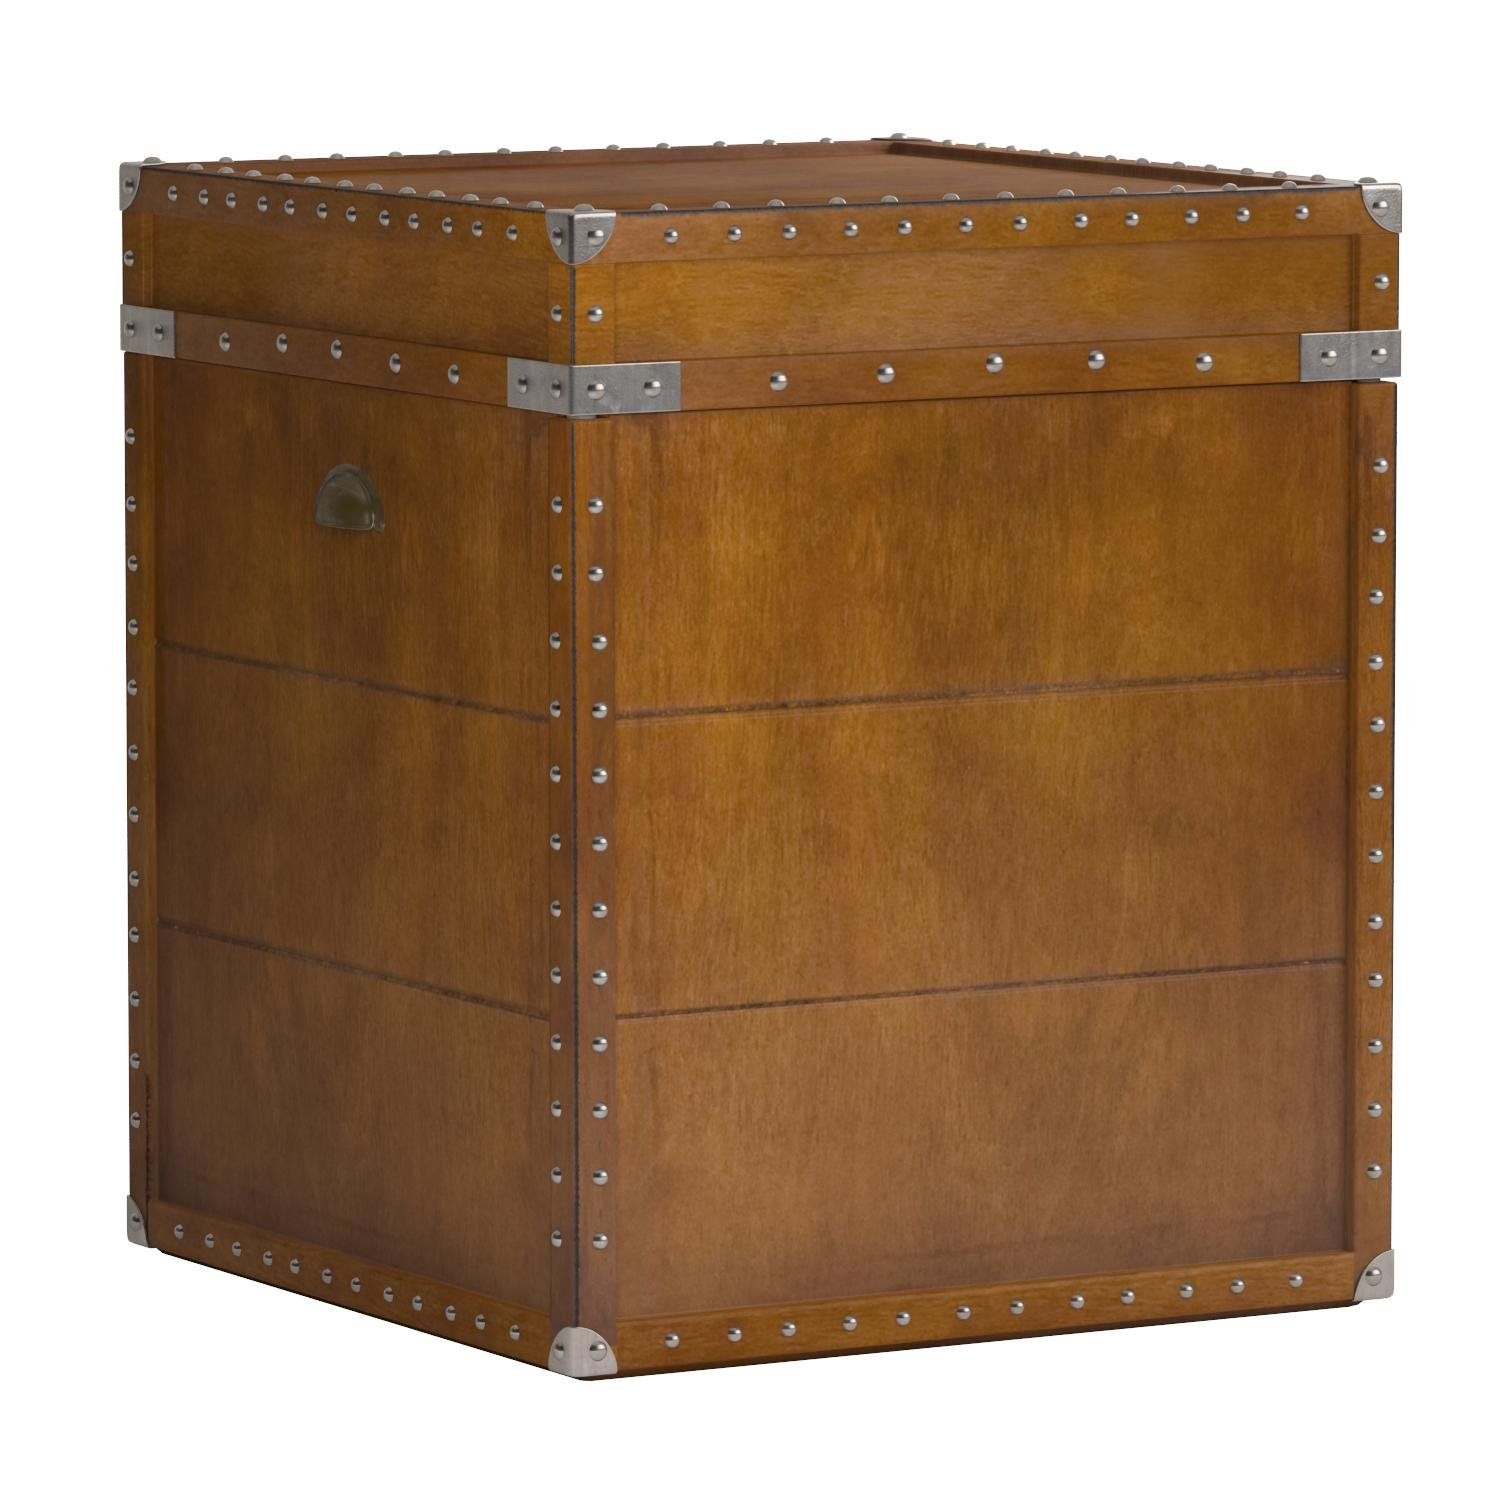 Southern Enterprises Steamer Trunk End Table - Rustic Nailhead Trim - Refinded Industrial Style by Southern Enterprises (Image #10)